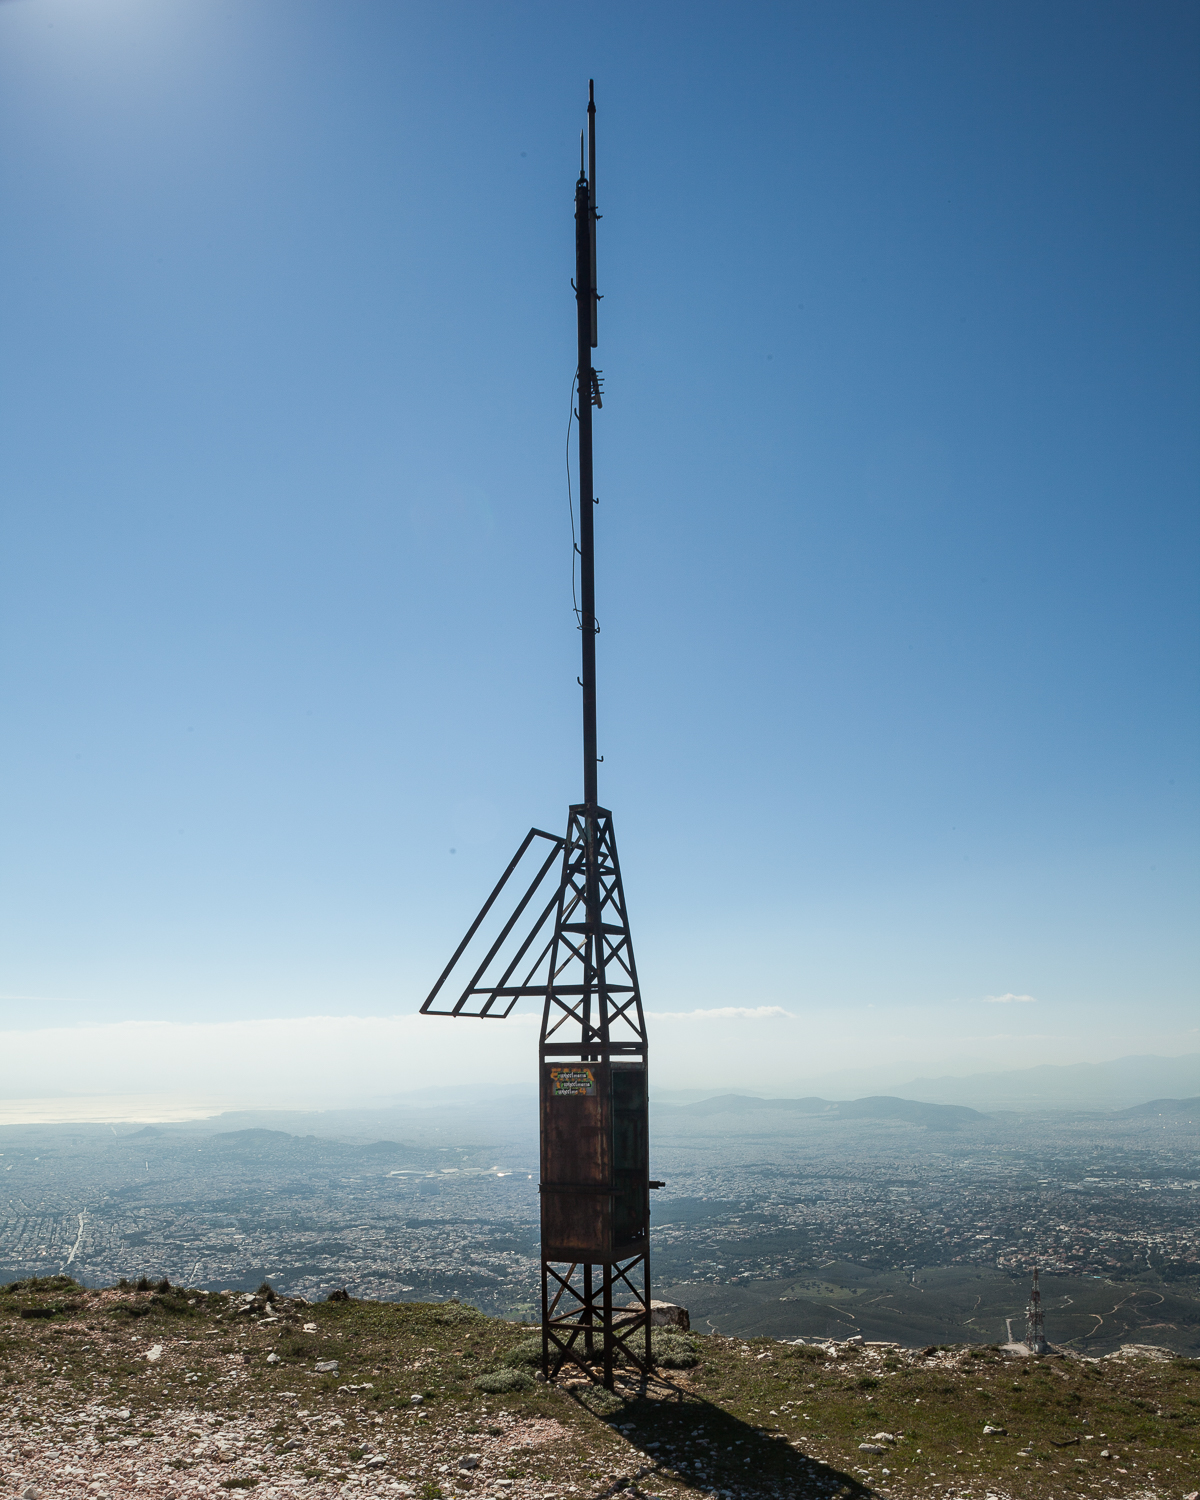 Defunct communications installation near the summit of Penteli at approximately 1,100 meters. View facing southwest.